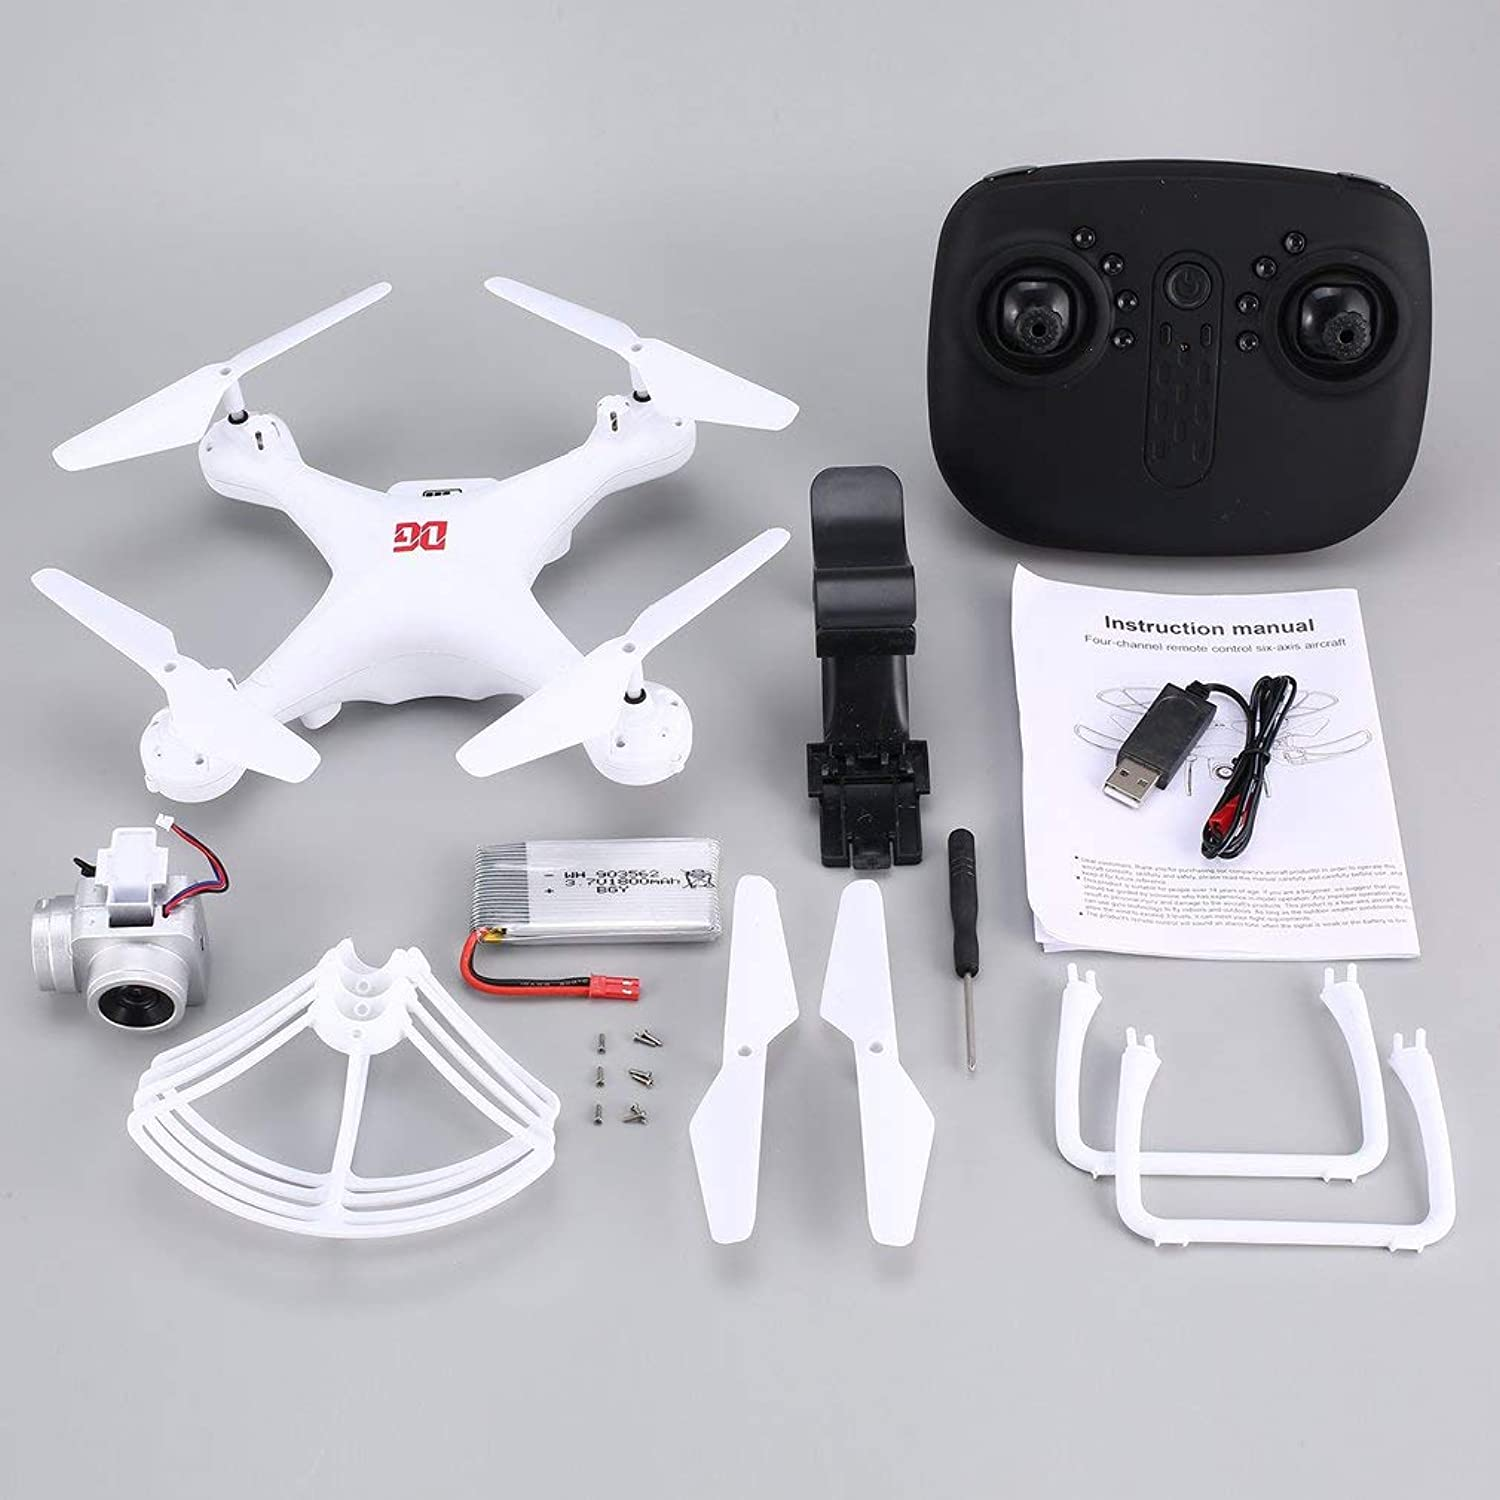 GreatWall XG183 2,4 G RC Smart Drone FPV Quadcopter UAV mit 720 P Kamera Hhe halten wei